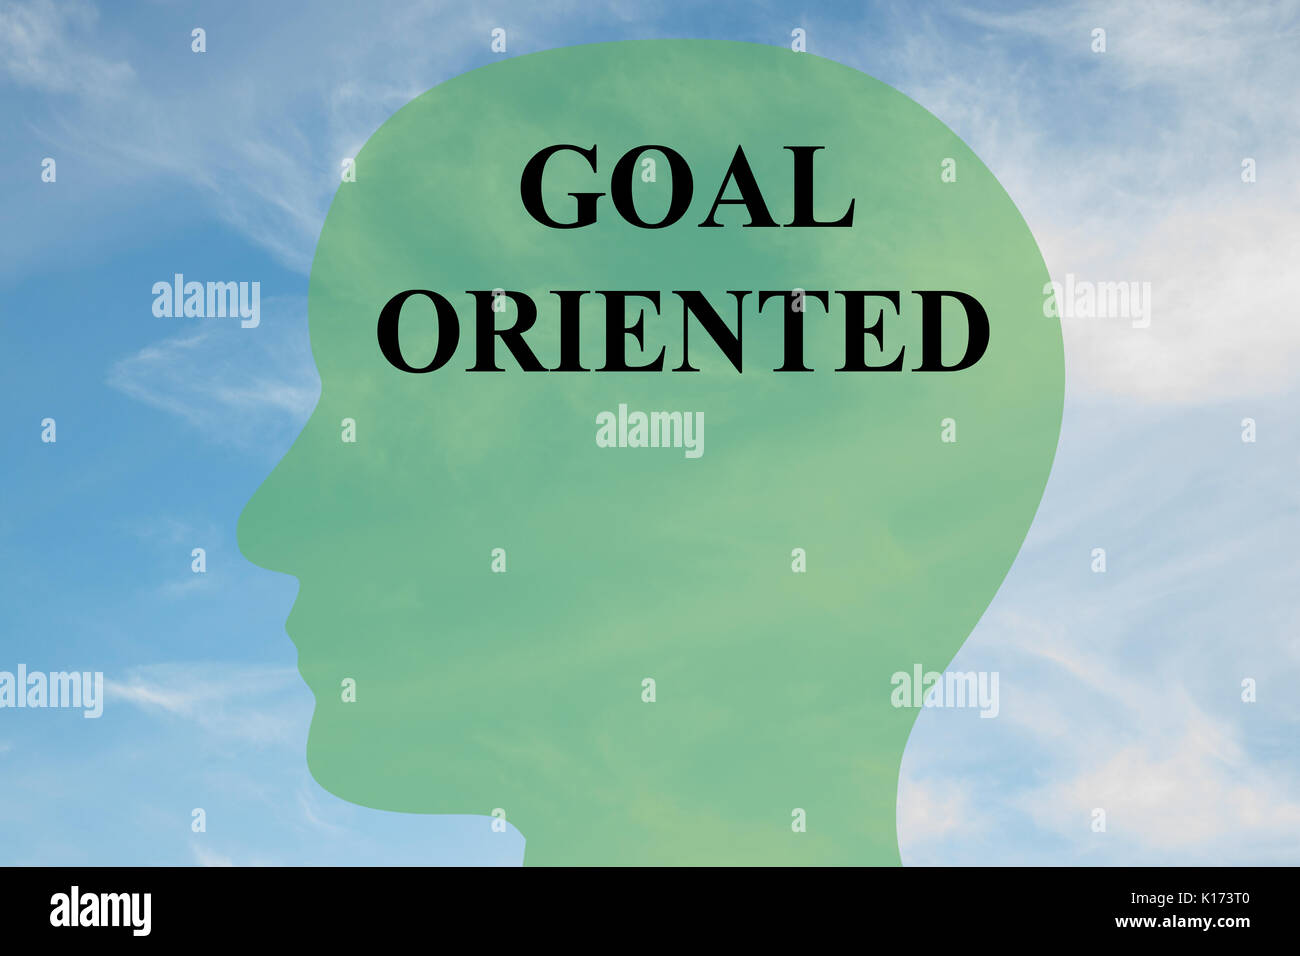 Render illustration of 'GOAL ORIENTED' script on head silhouette, with cloudy sky as a background. - Stock Image